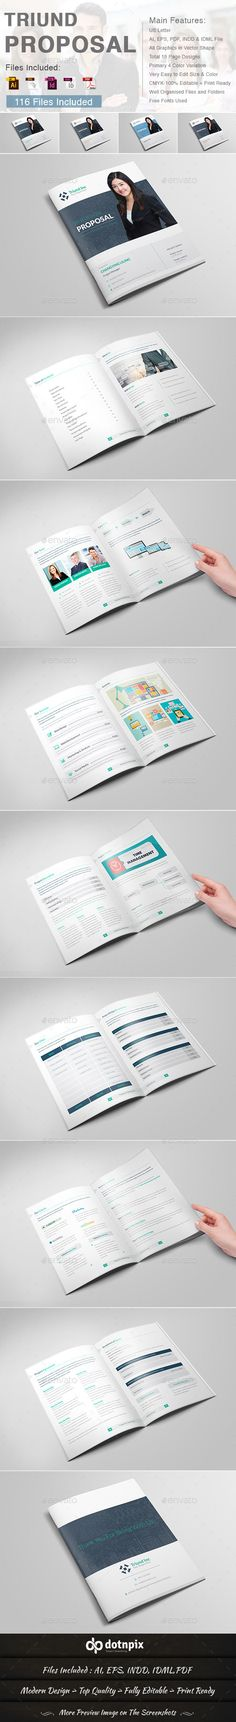 Triund Proposal Template | Buy and Download: http://graphicriver.net/item/triund-proposal/9713121?ref=ksioks